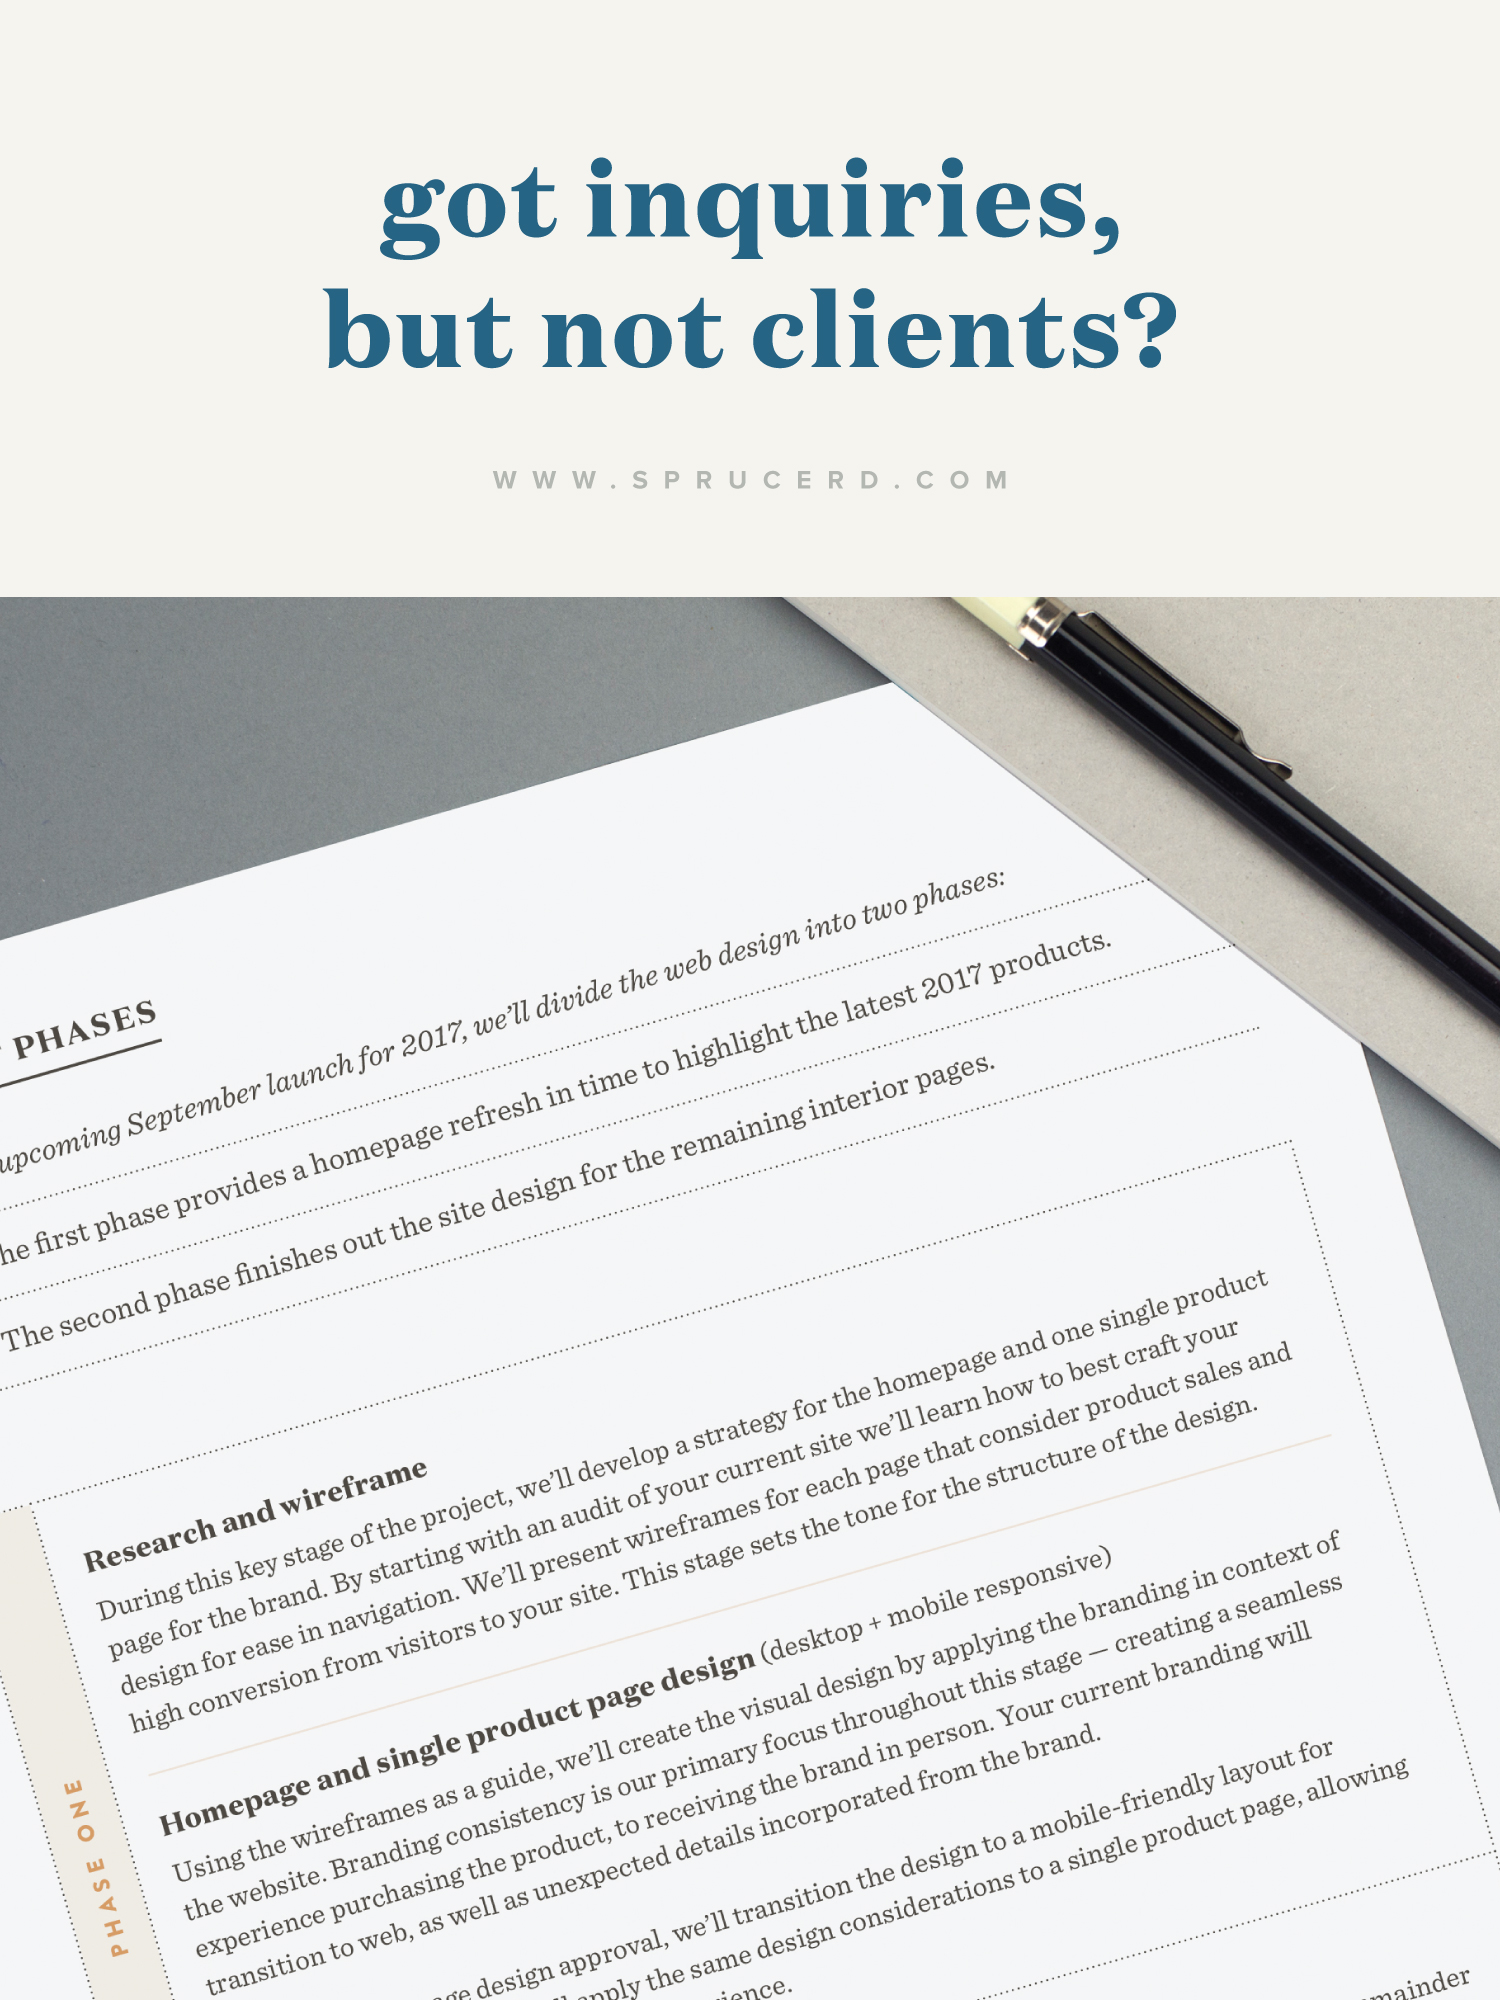 Got inquiries, but not clients? | Spruce Rd. | Here are 8 techniques to help bridge that gap between inquiry and booked client.